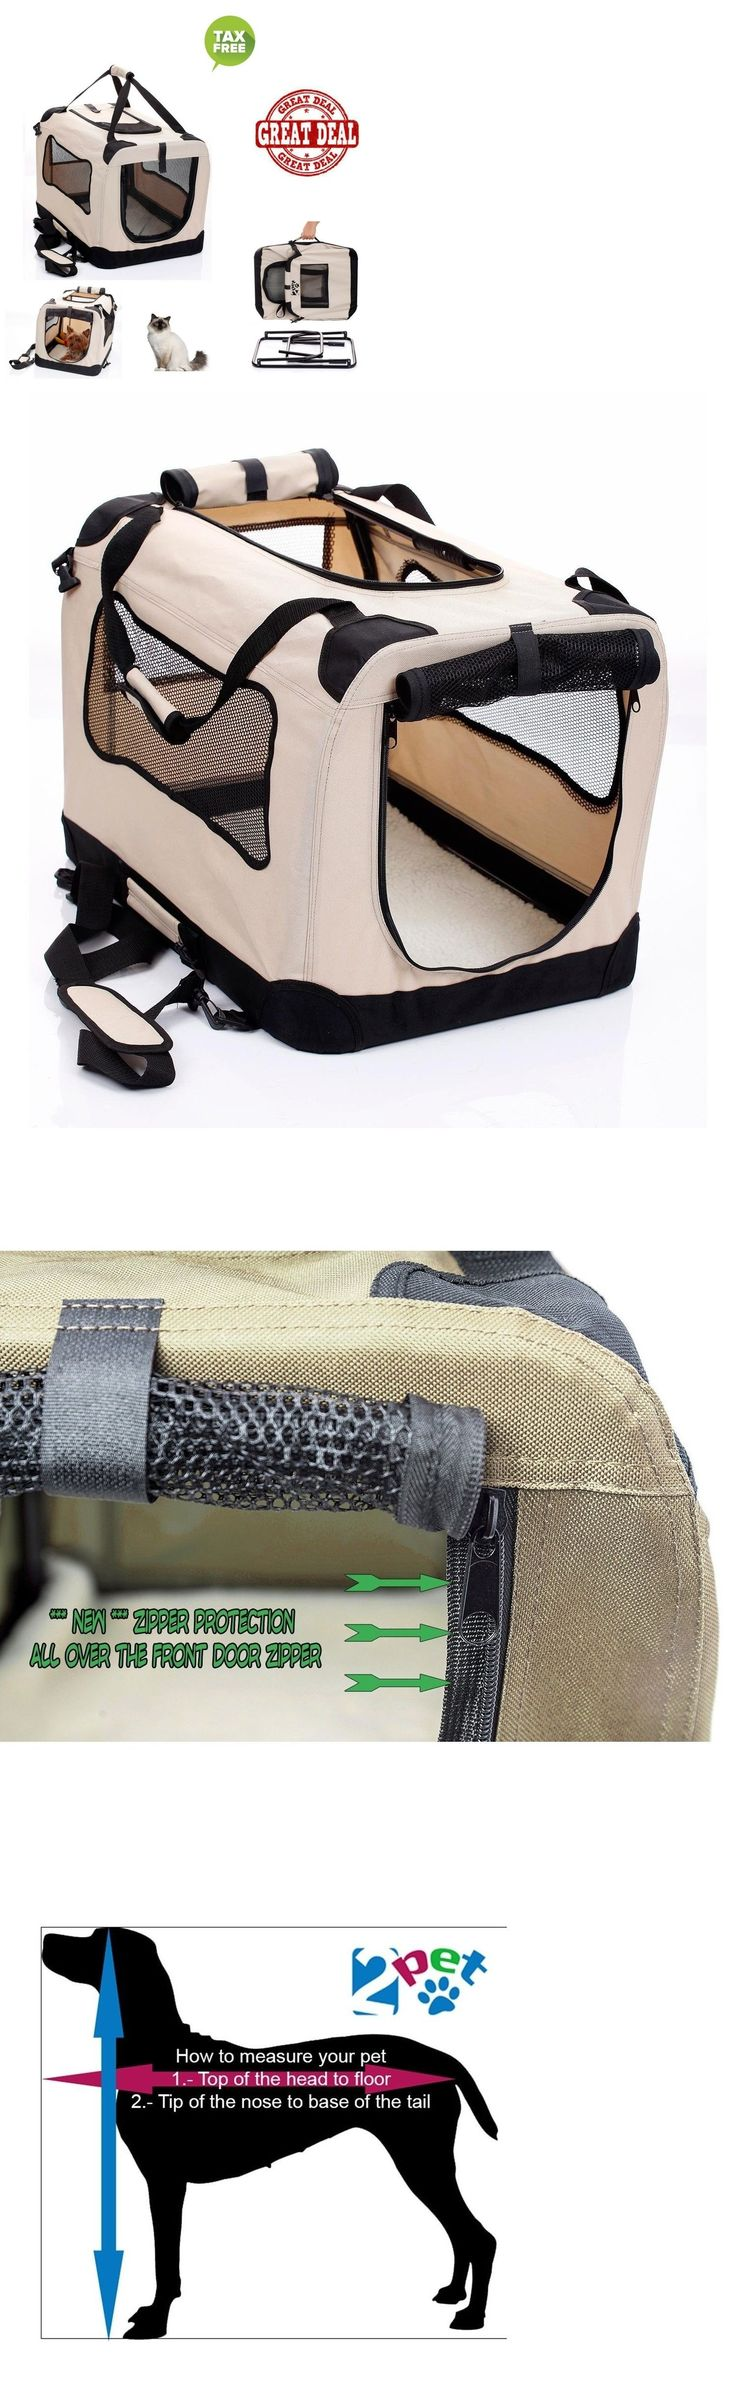 Carriers and Crates 116362: Pet Carriers For Cats Dog Crates Small Dogs Cat Carrying Case Travel Accessory -> BUY IT NOW ONLY: $54.99 on eBay!